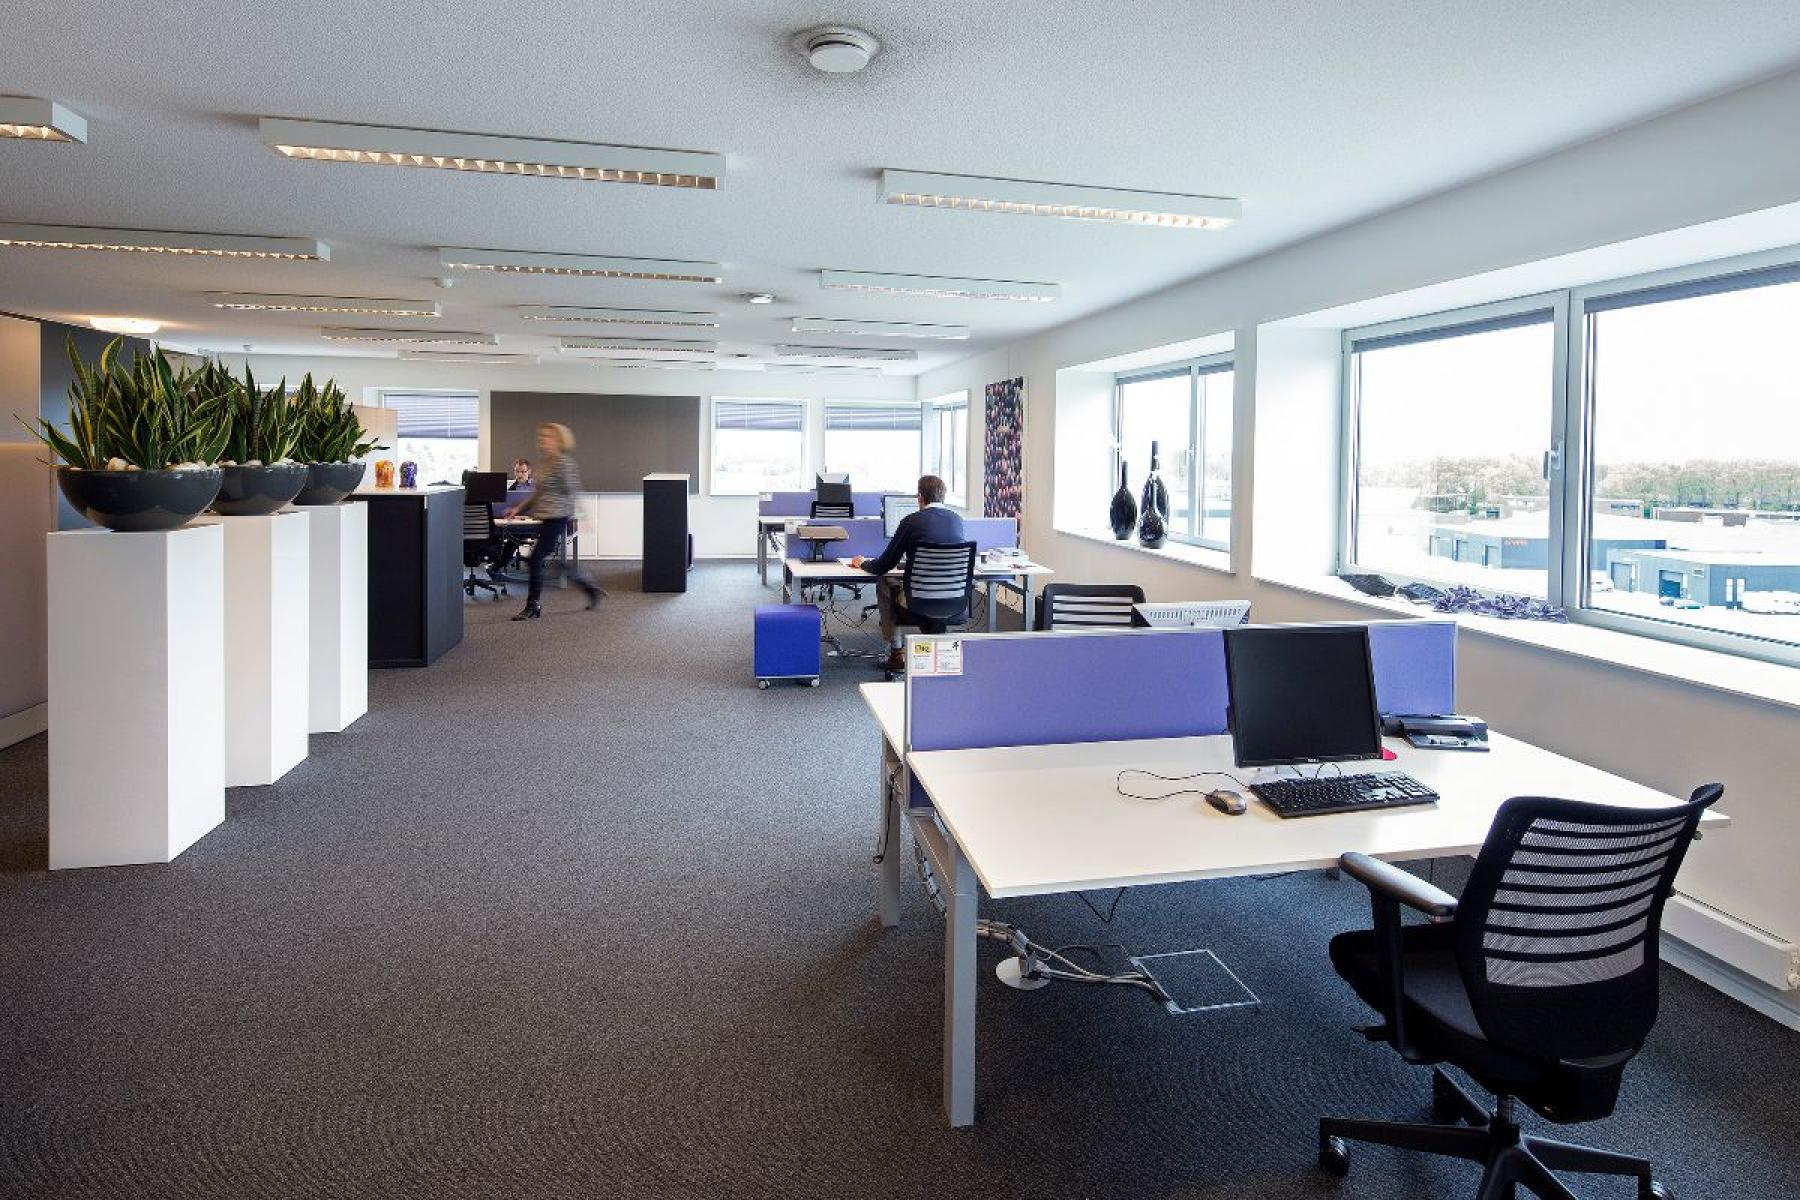 Office space with working spaces